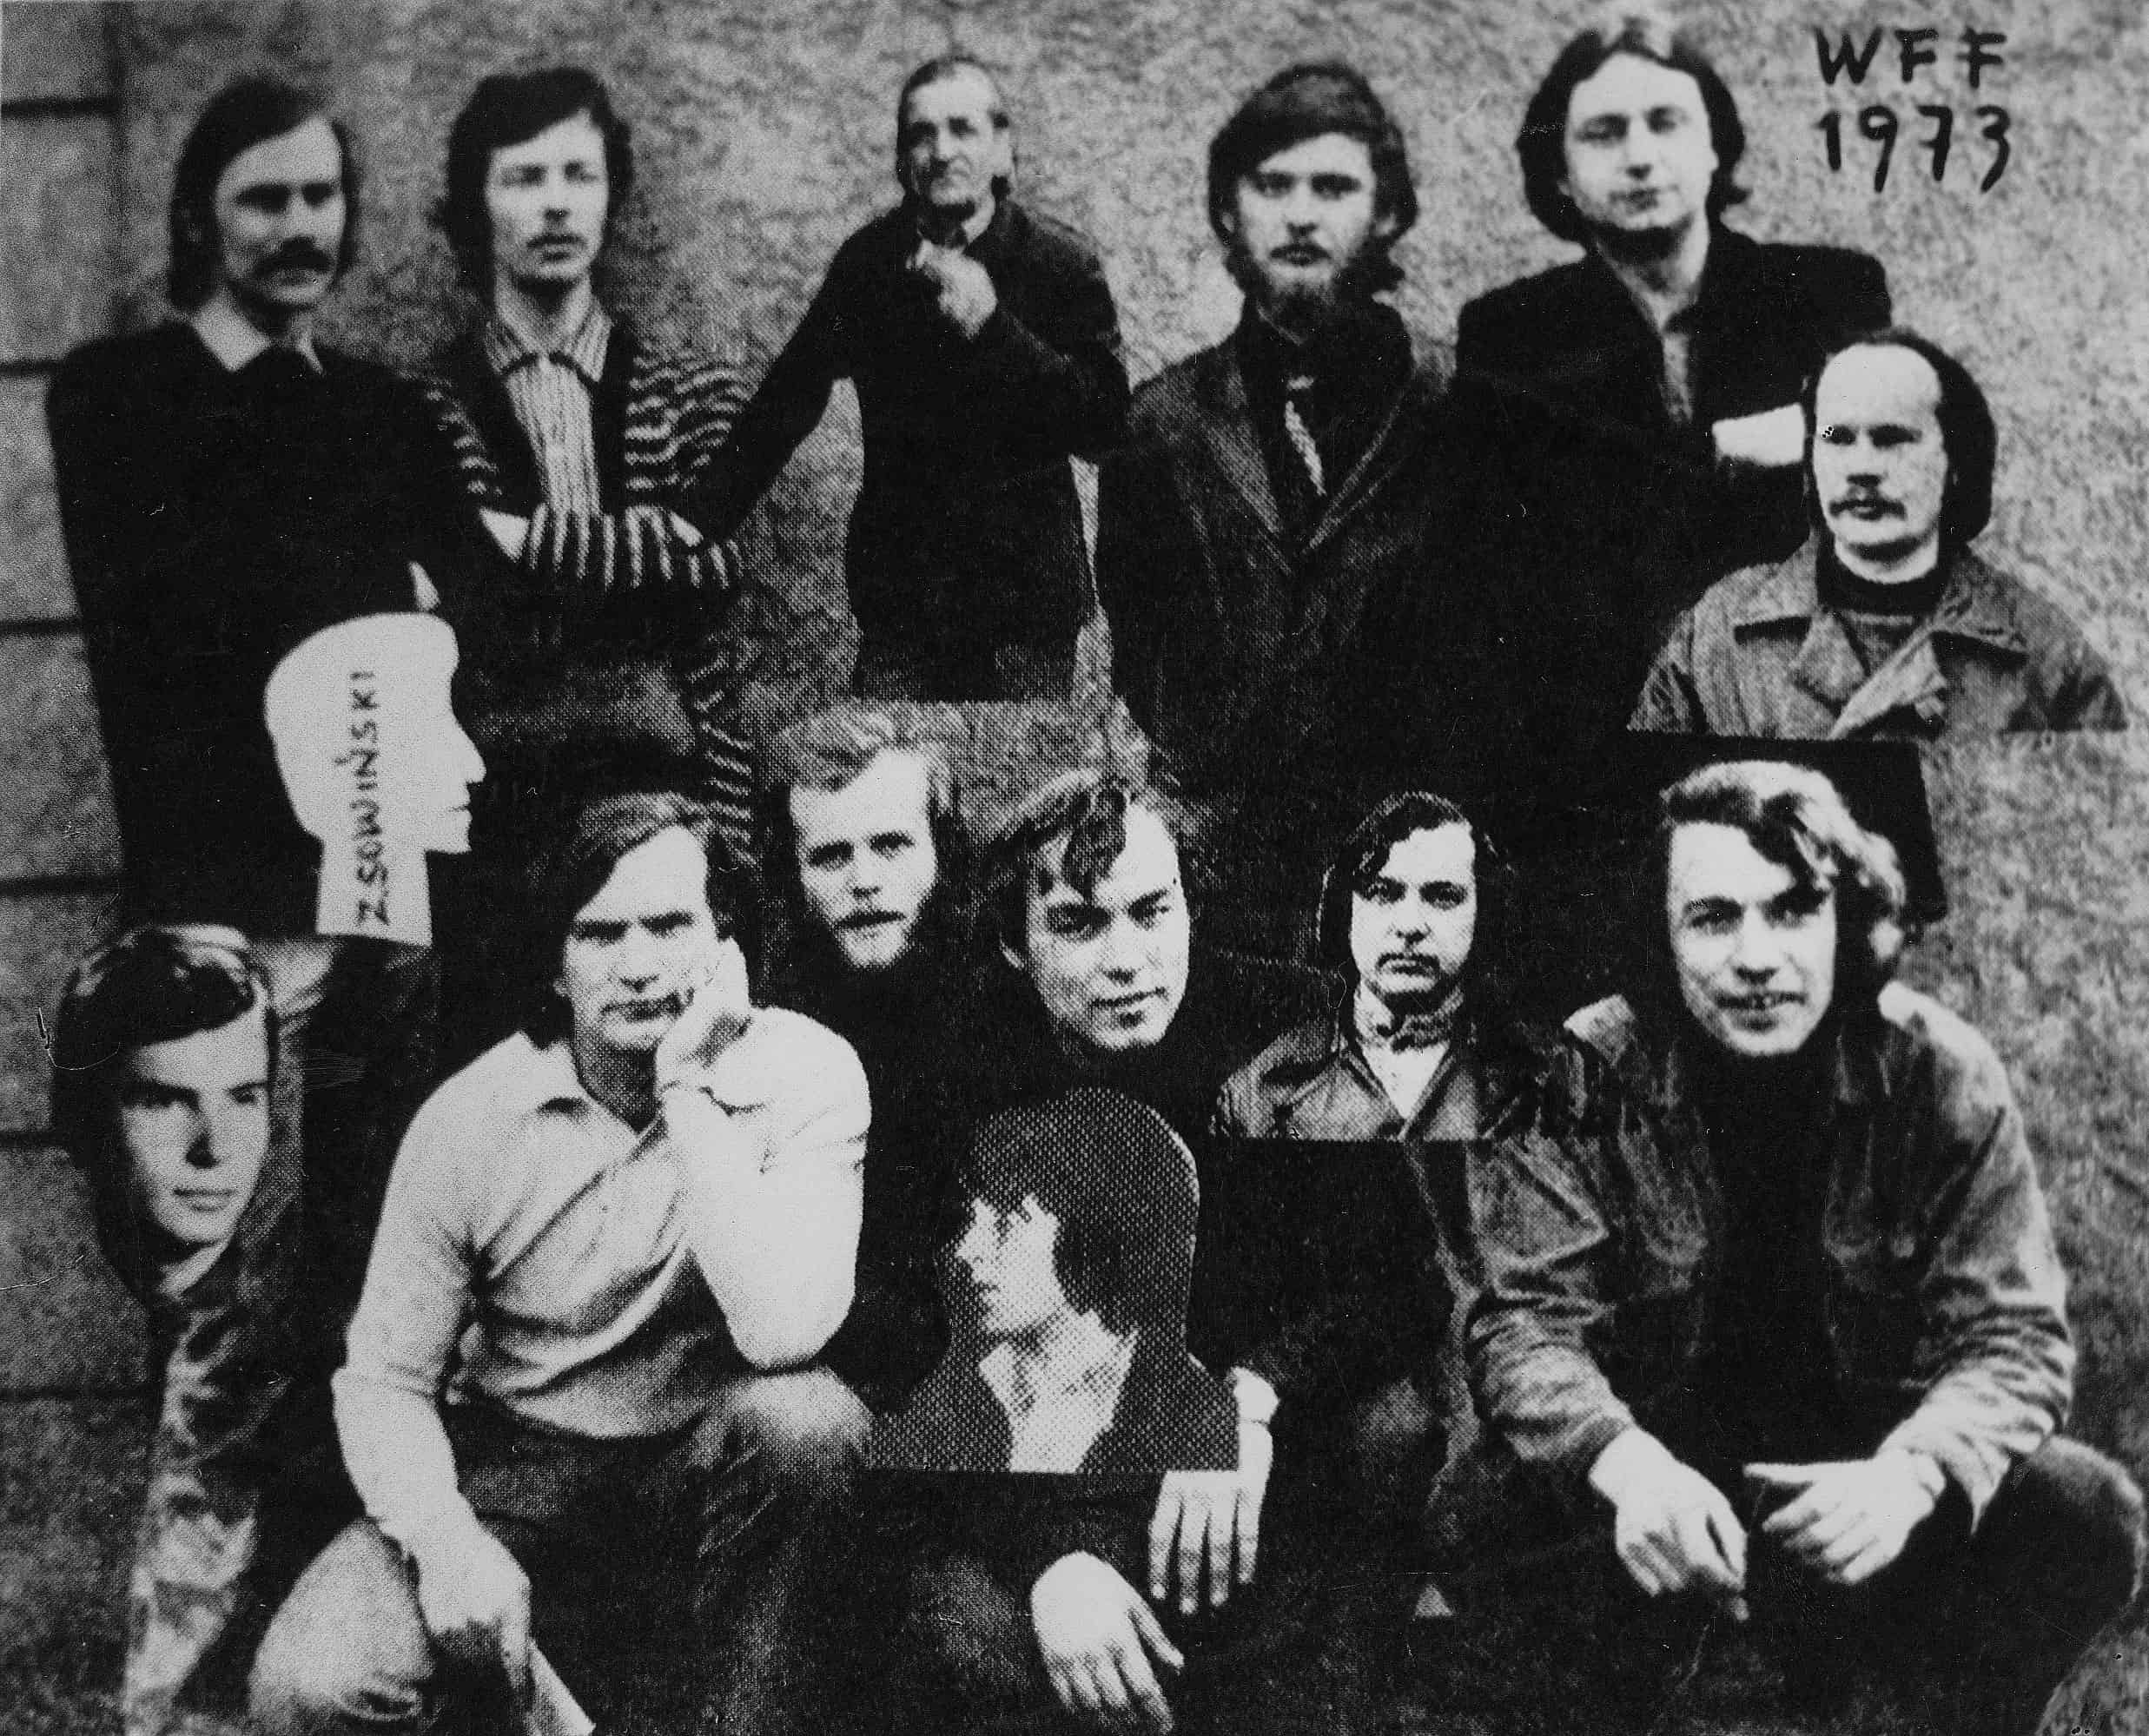 New media artists from the Workshop of the Film Form, Łódź 1973, courtesy of the Exchange Gallery